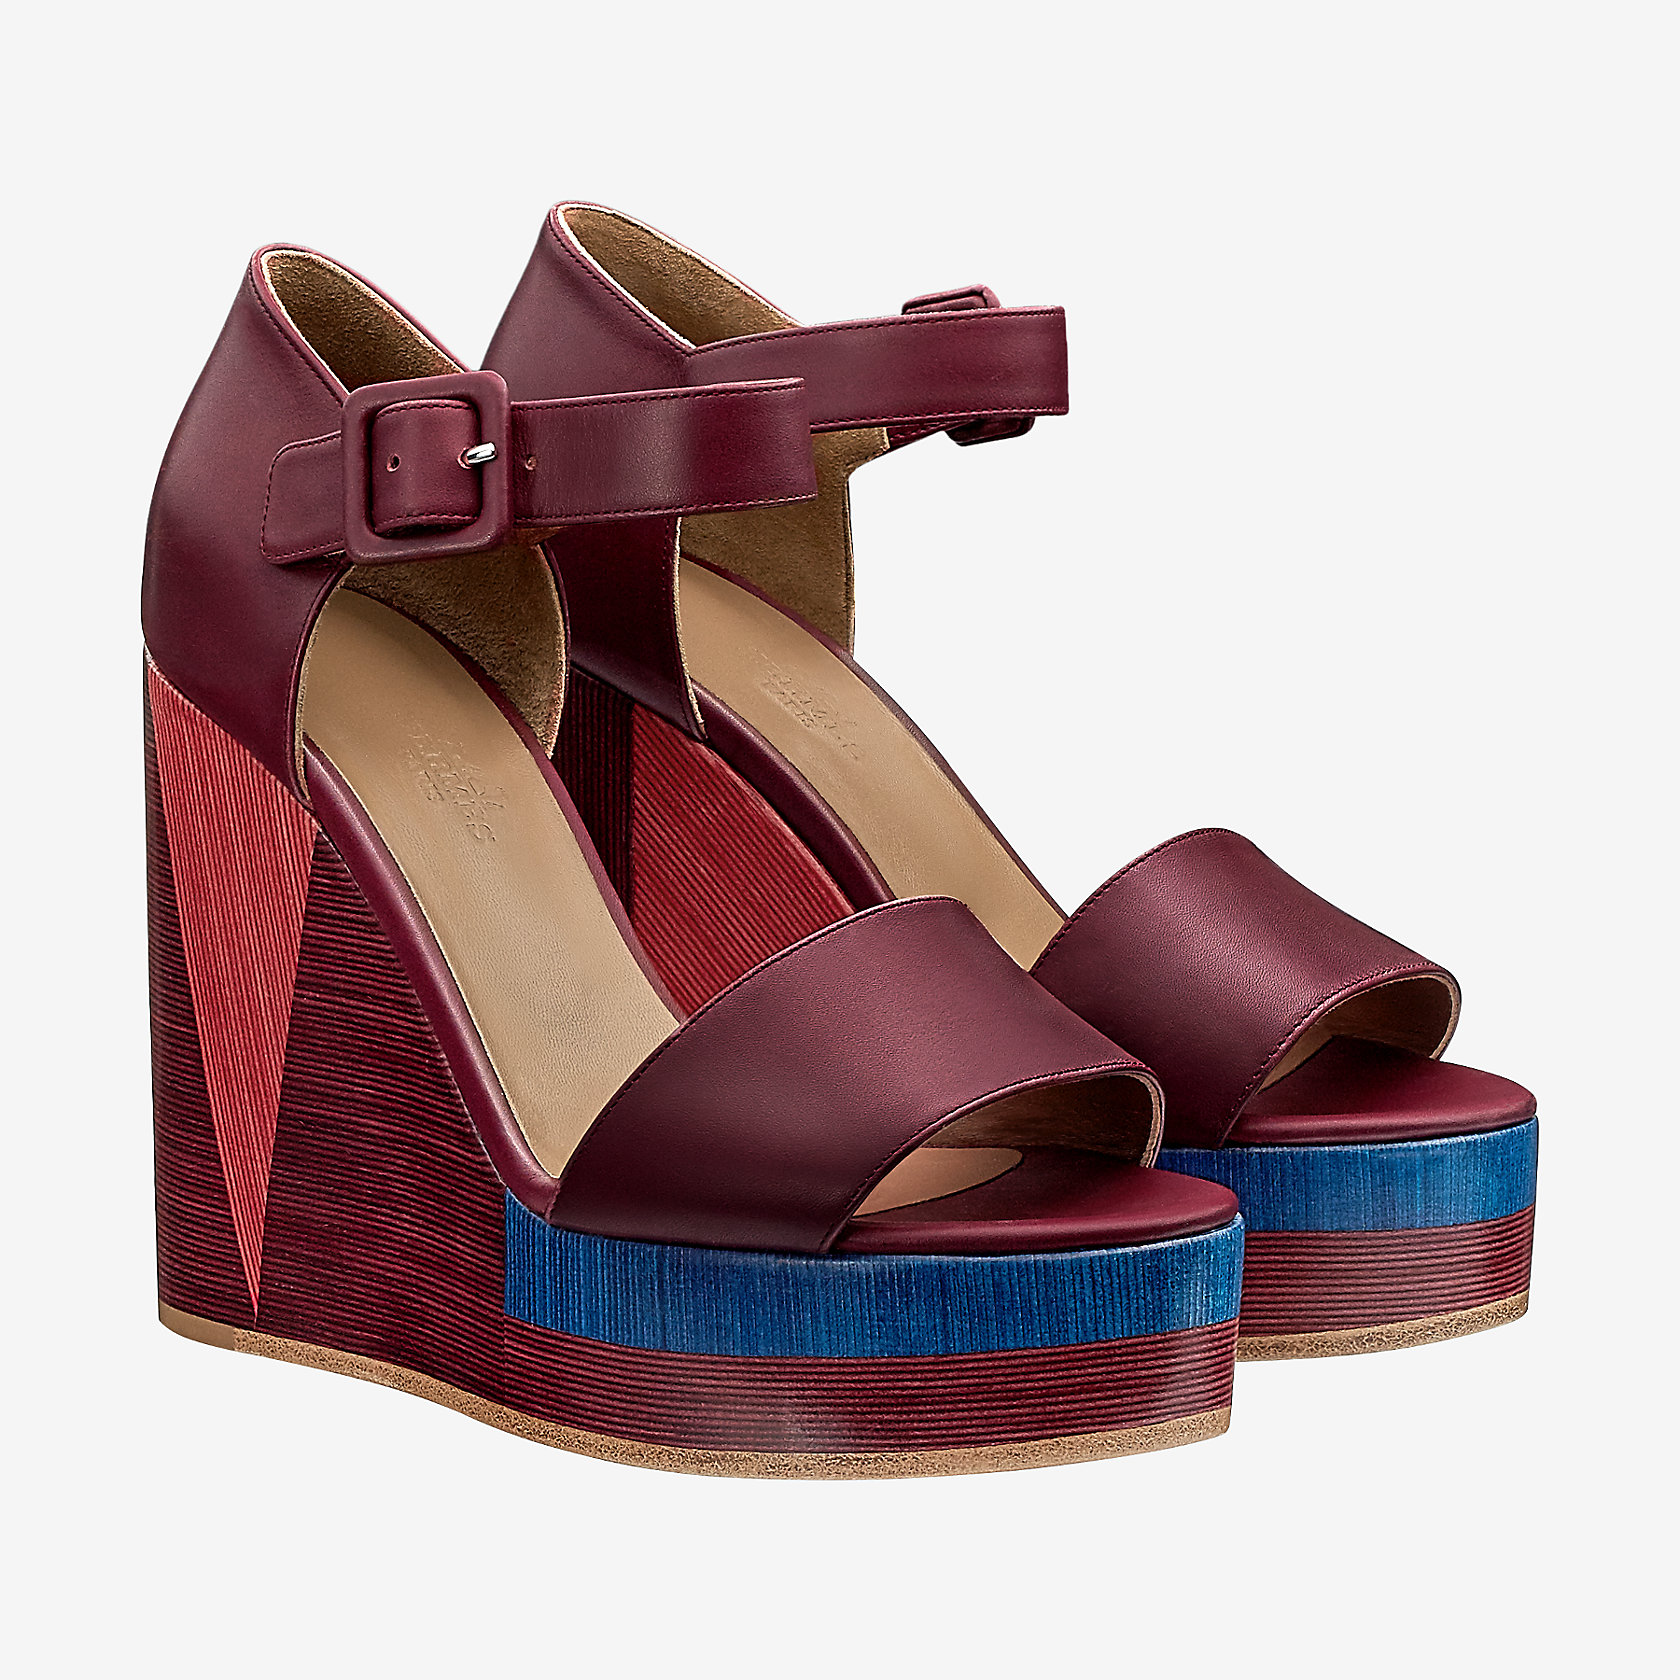 Women Shoes Delicate And Elegant Women Shoes On Hermès Website - What is invoice price best online women's clothing stores